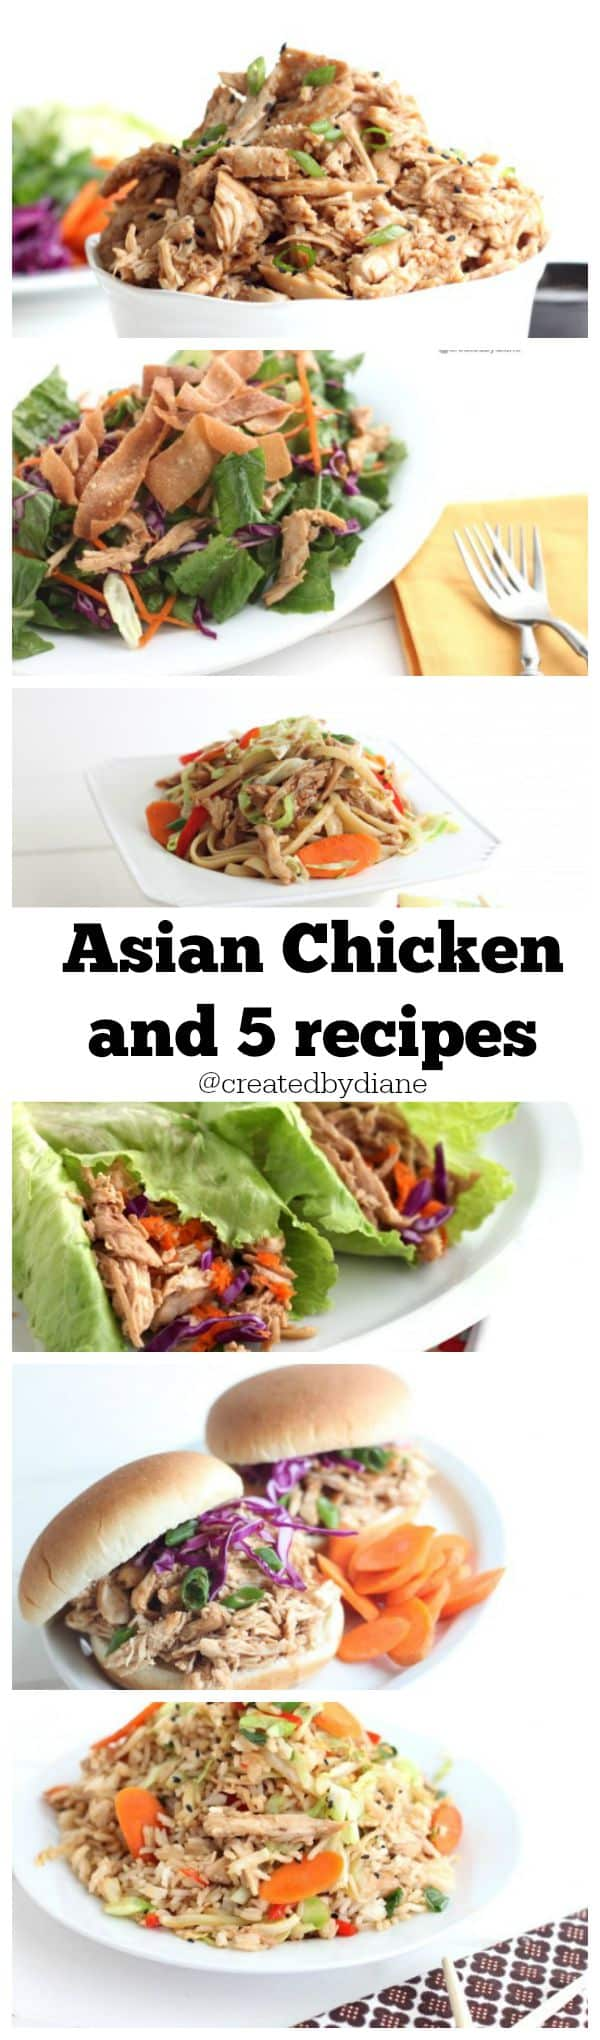 Asian Chicken Recipes @createdbydiane